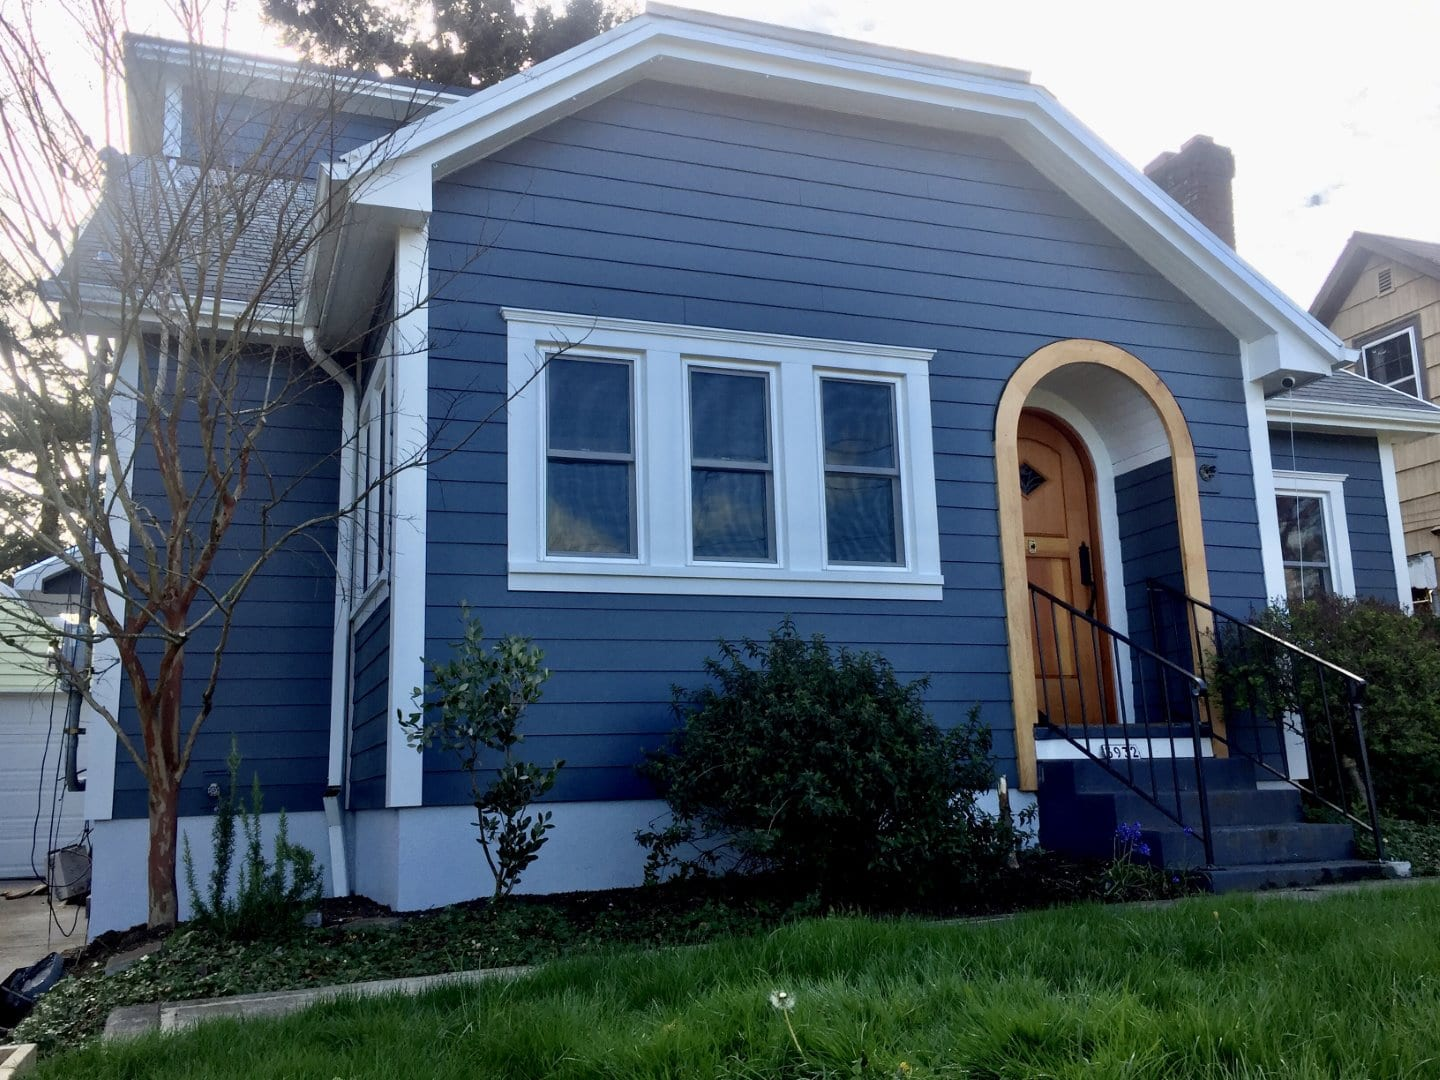 After install of James Hardie ColorPlus Smooth Siding Window Sills Crown Molding 5K Gutters & New Paint on Eves Foundation in Portland